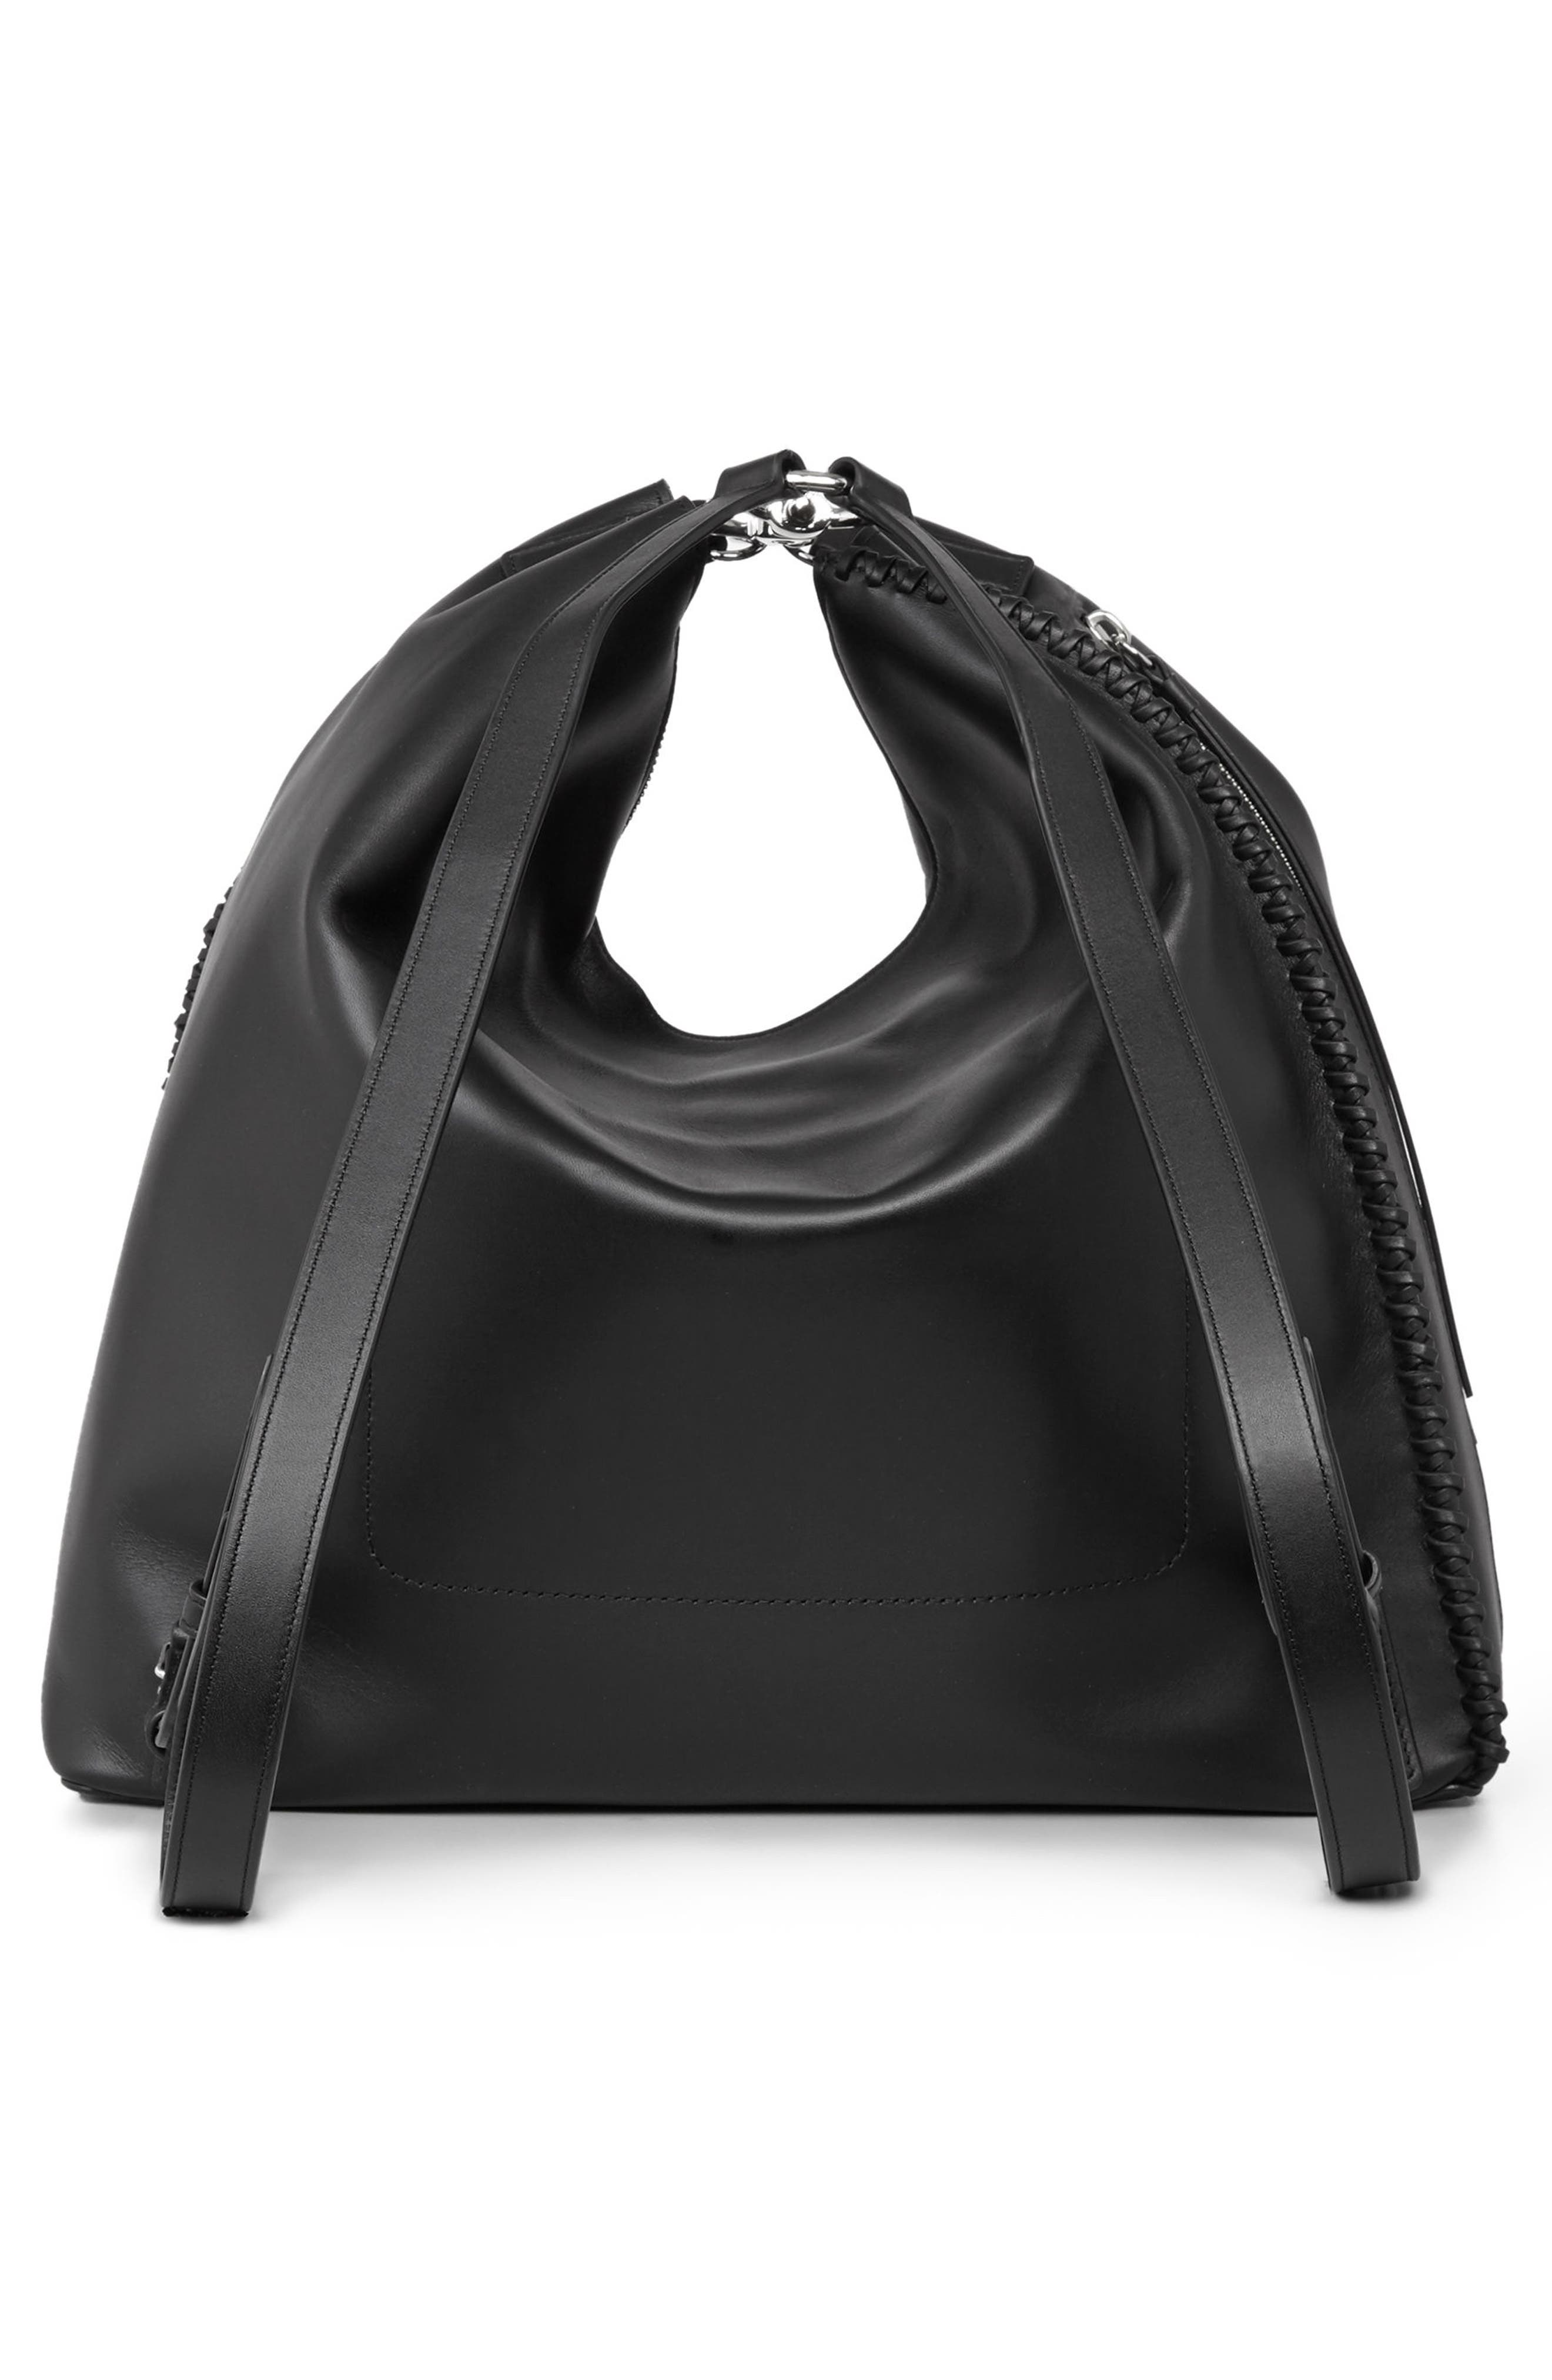 Pearl Convertible Leather Backpack,                             Alternate thumbnail 3, color,                             Black